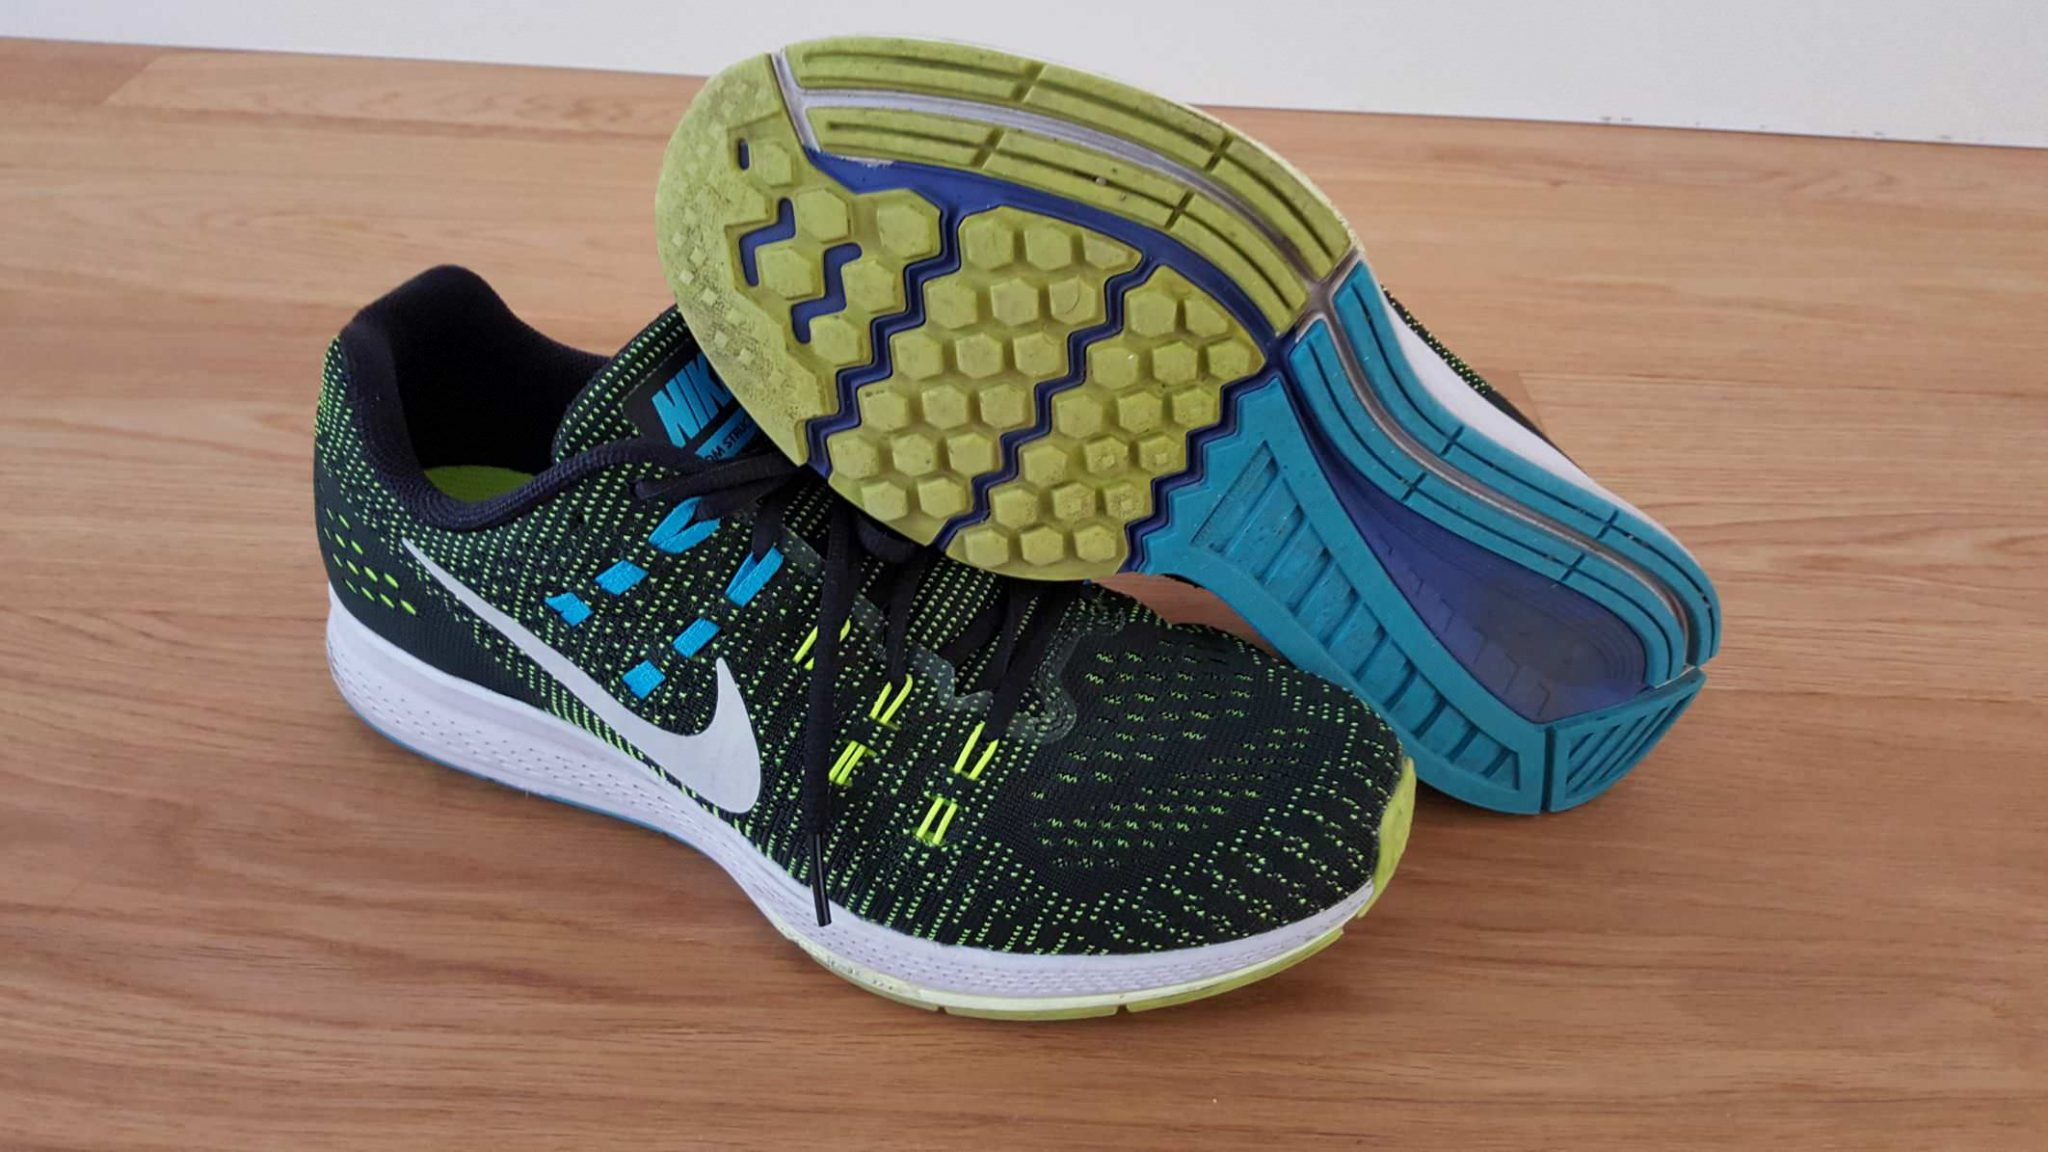 Nike Zoom Structure 19-2